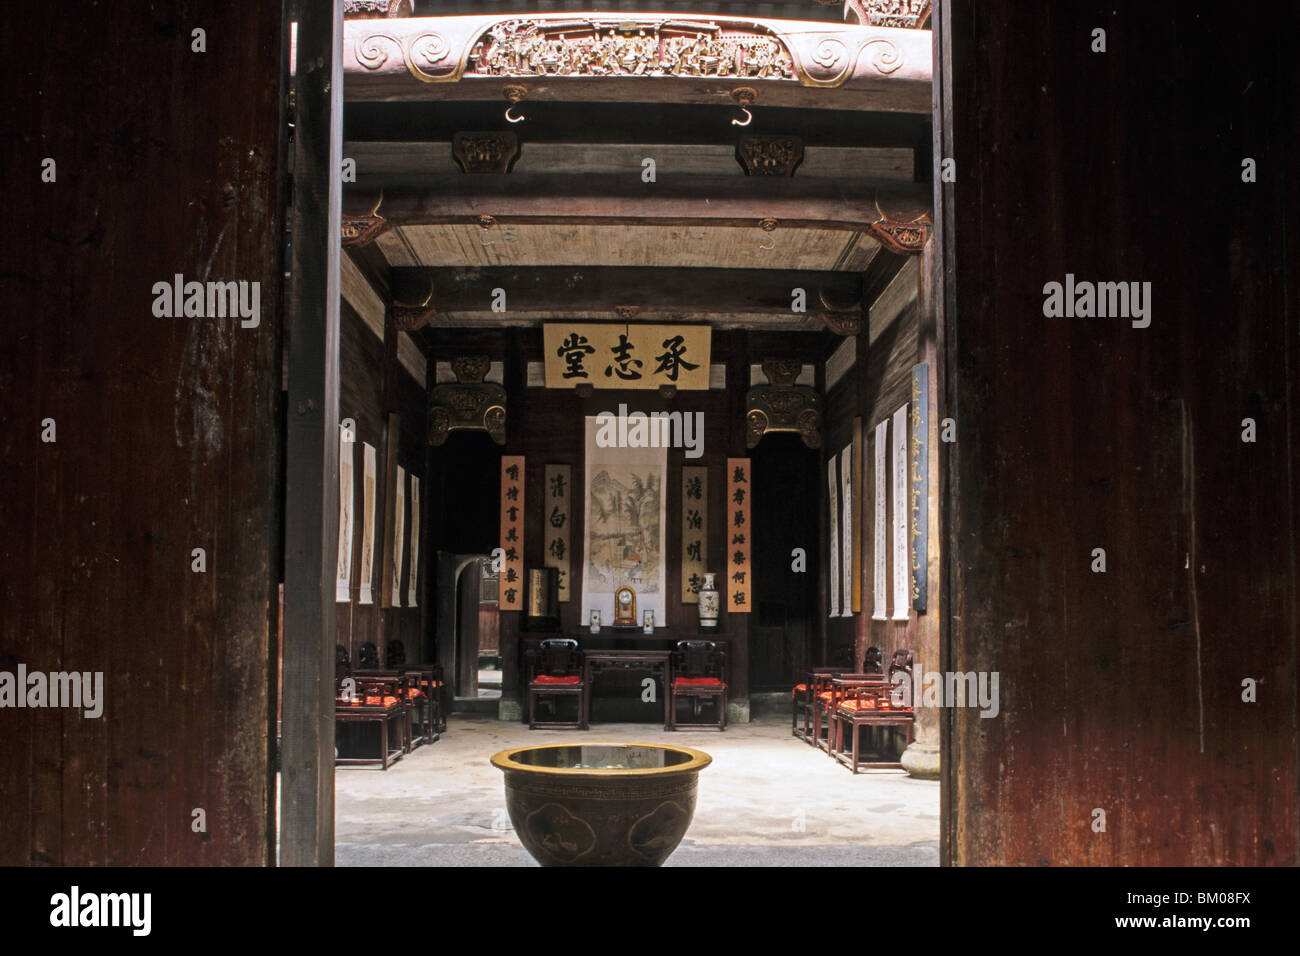 traditional courtyard of a merchants house, timber house in Hongcun, ancient village, living museum, China, Asia, - Stock Image